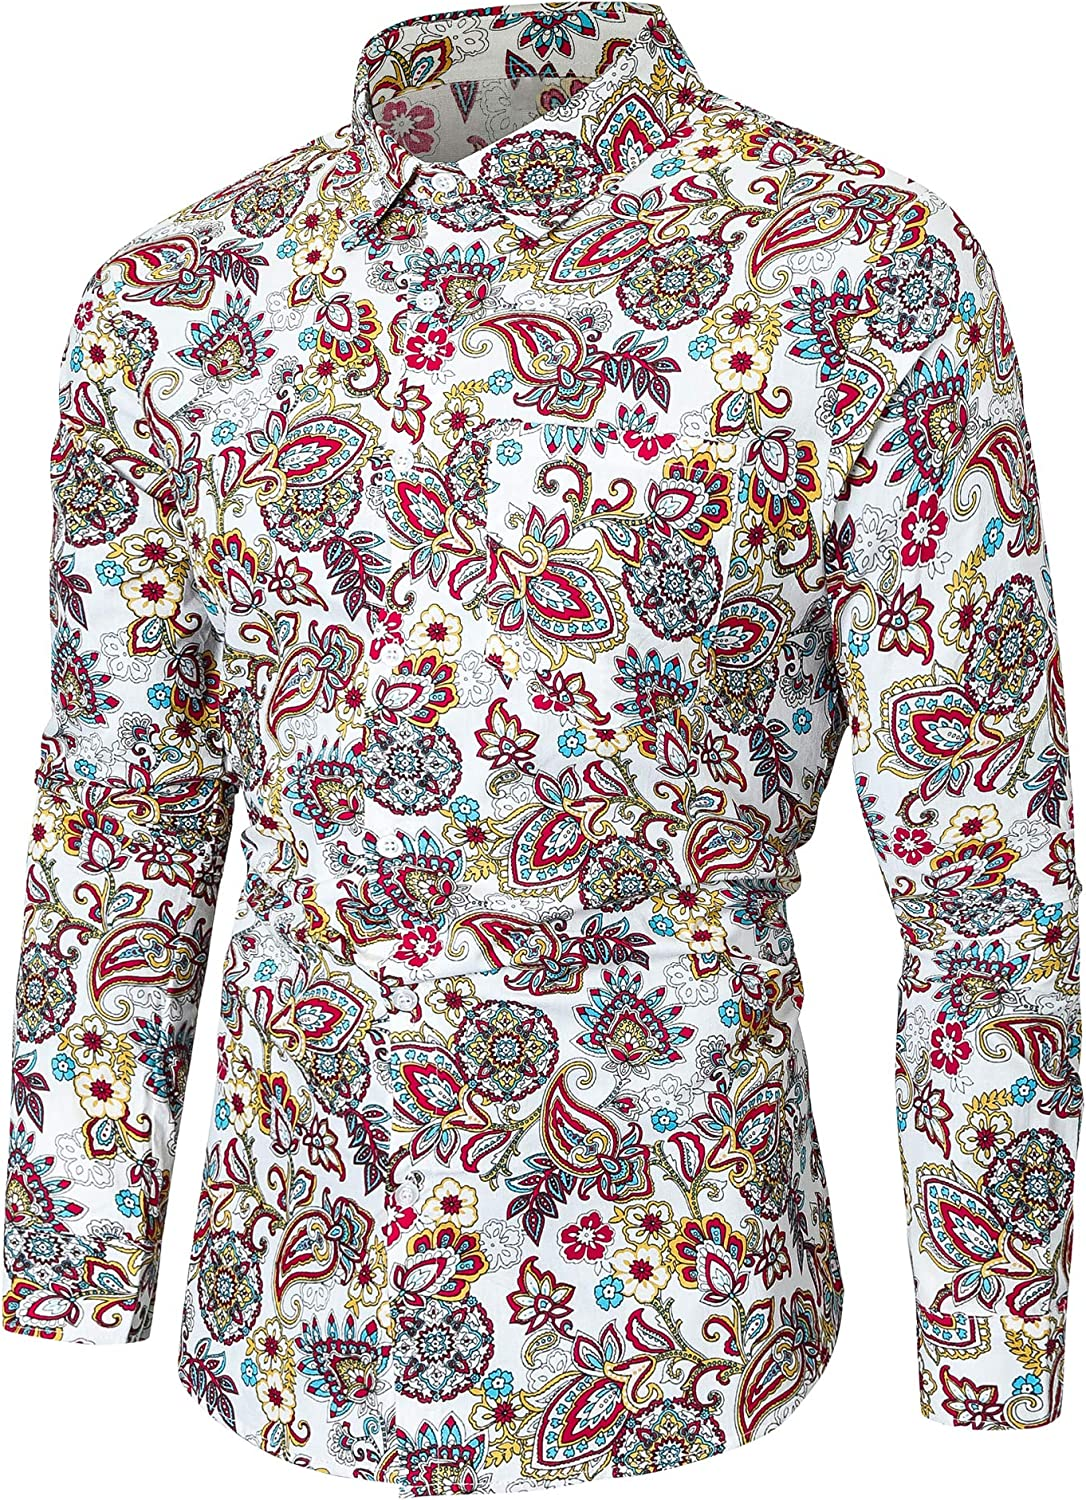 1960s Mens Shirts | 60s Mod Shirts, Hippie Shirts Emaor Mens Stylish Floral Long Sleeve Shirt & Short Sleeve Shirt $24.68 AT vintagedancer.com